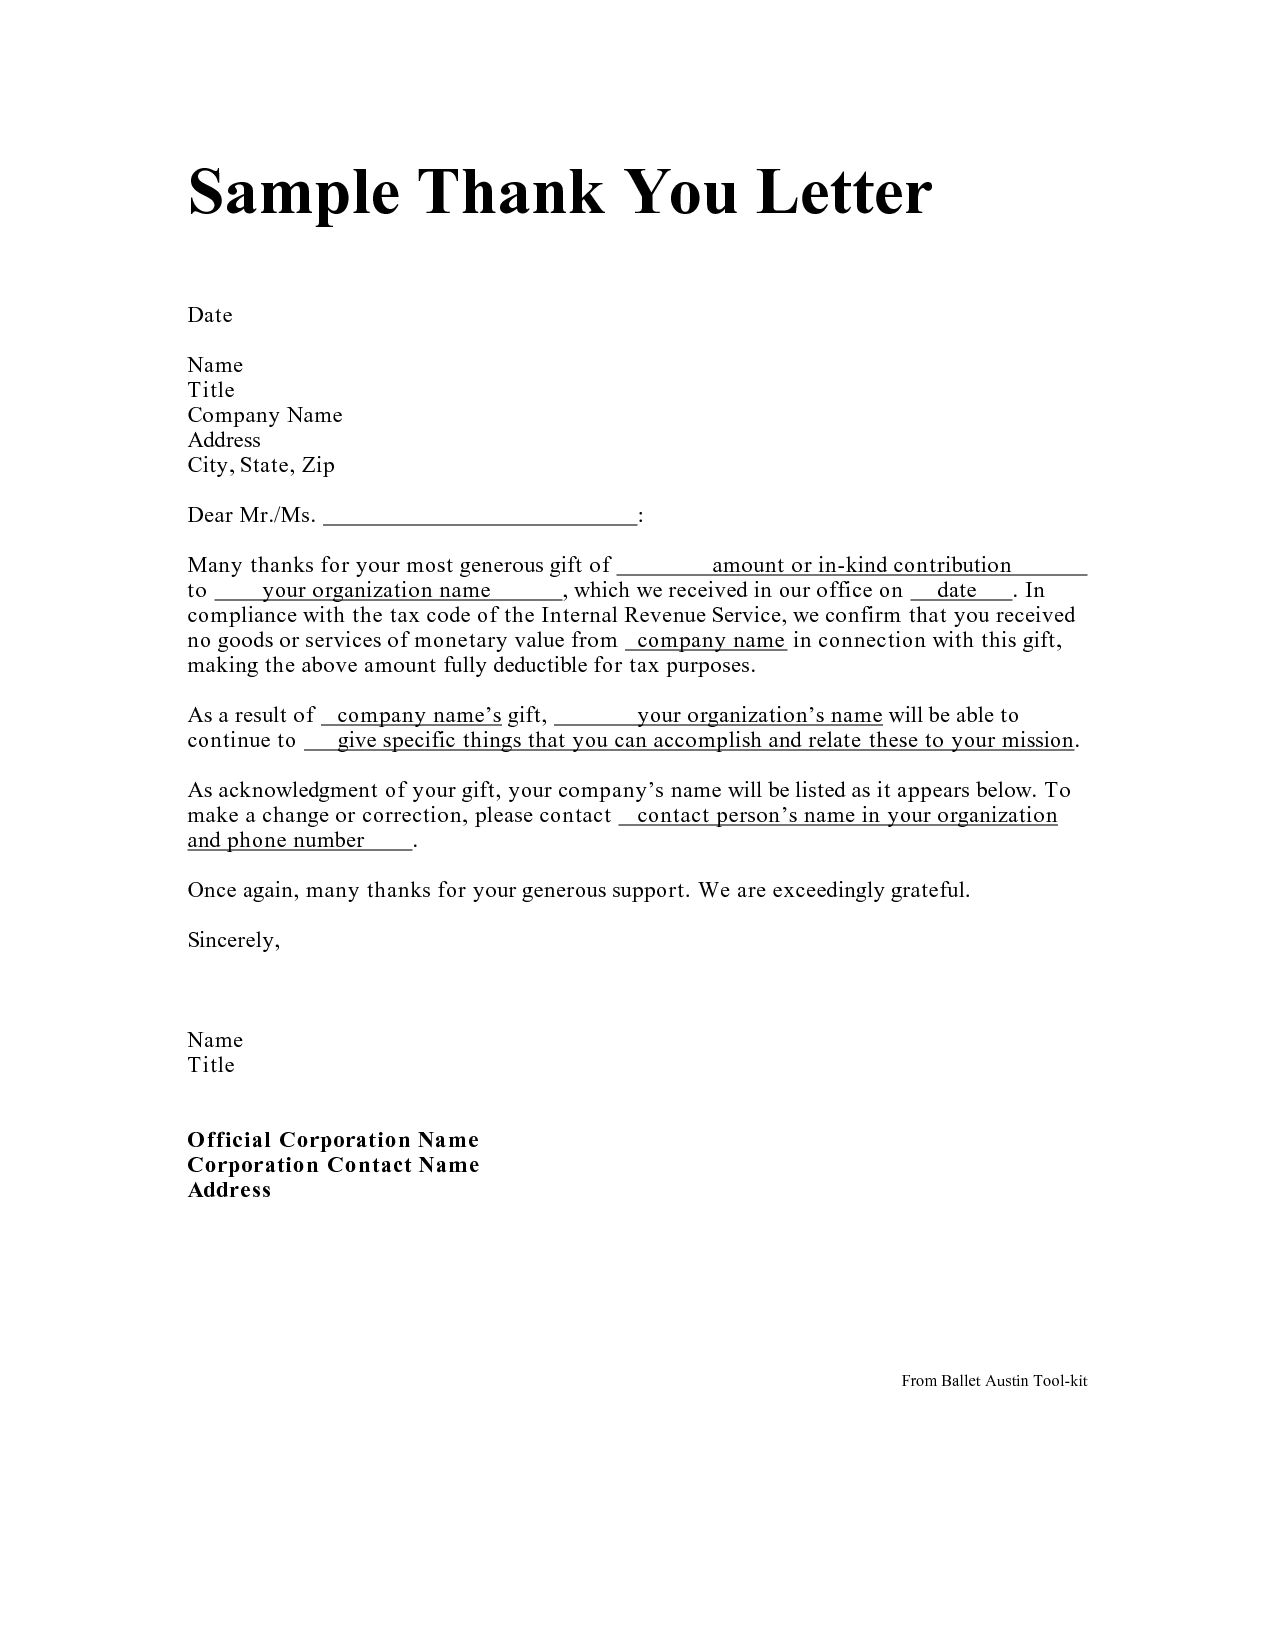 Personal Thank You Letter Personal Thank You Letter Samples – Thank You Letter Samples